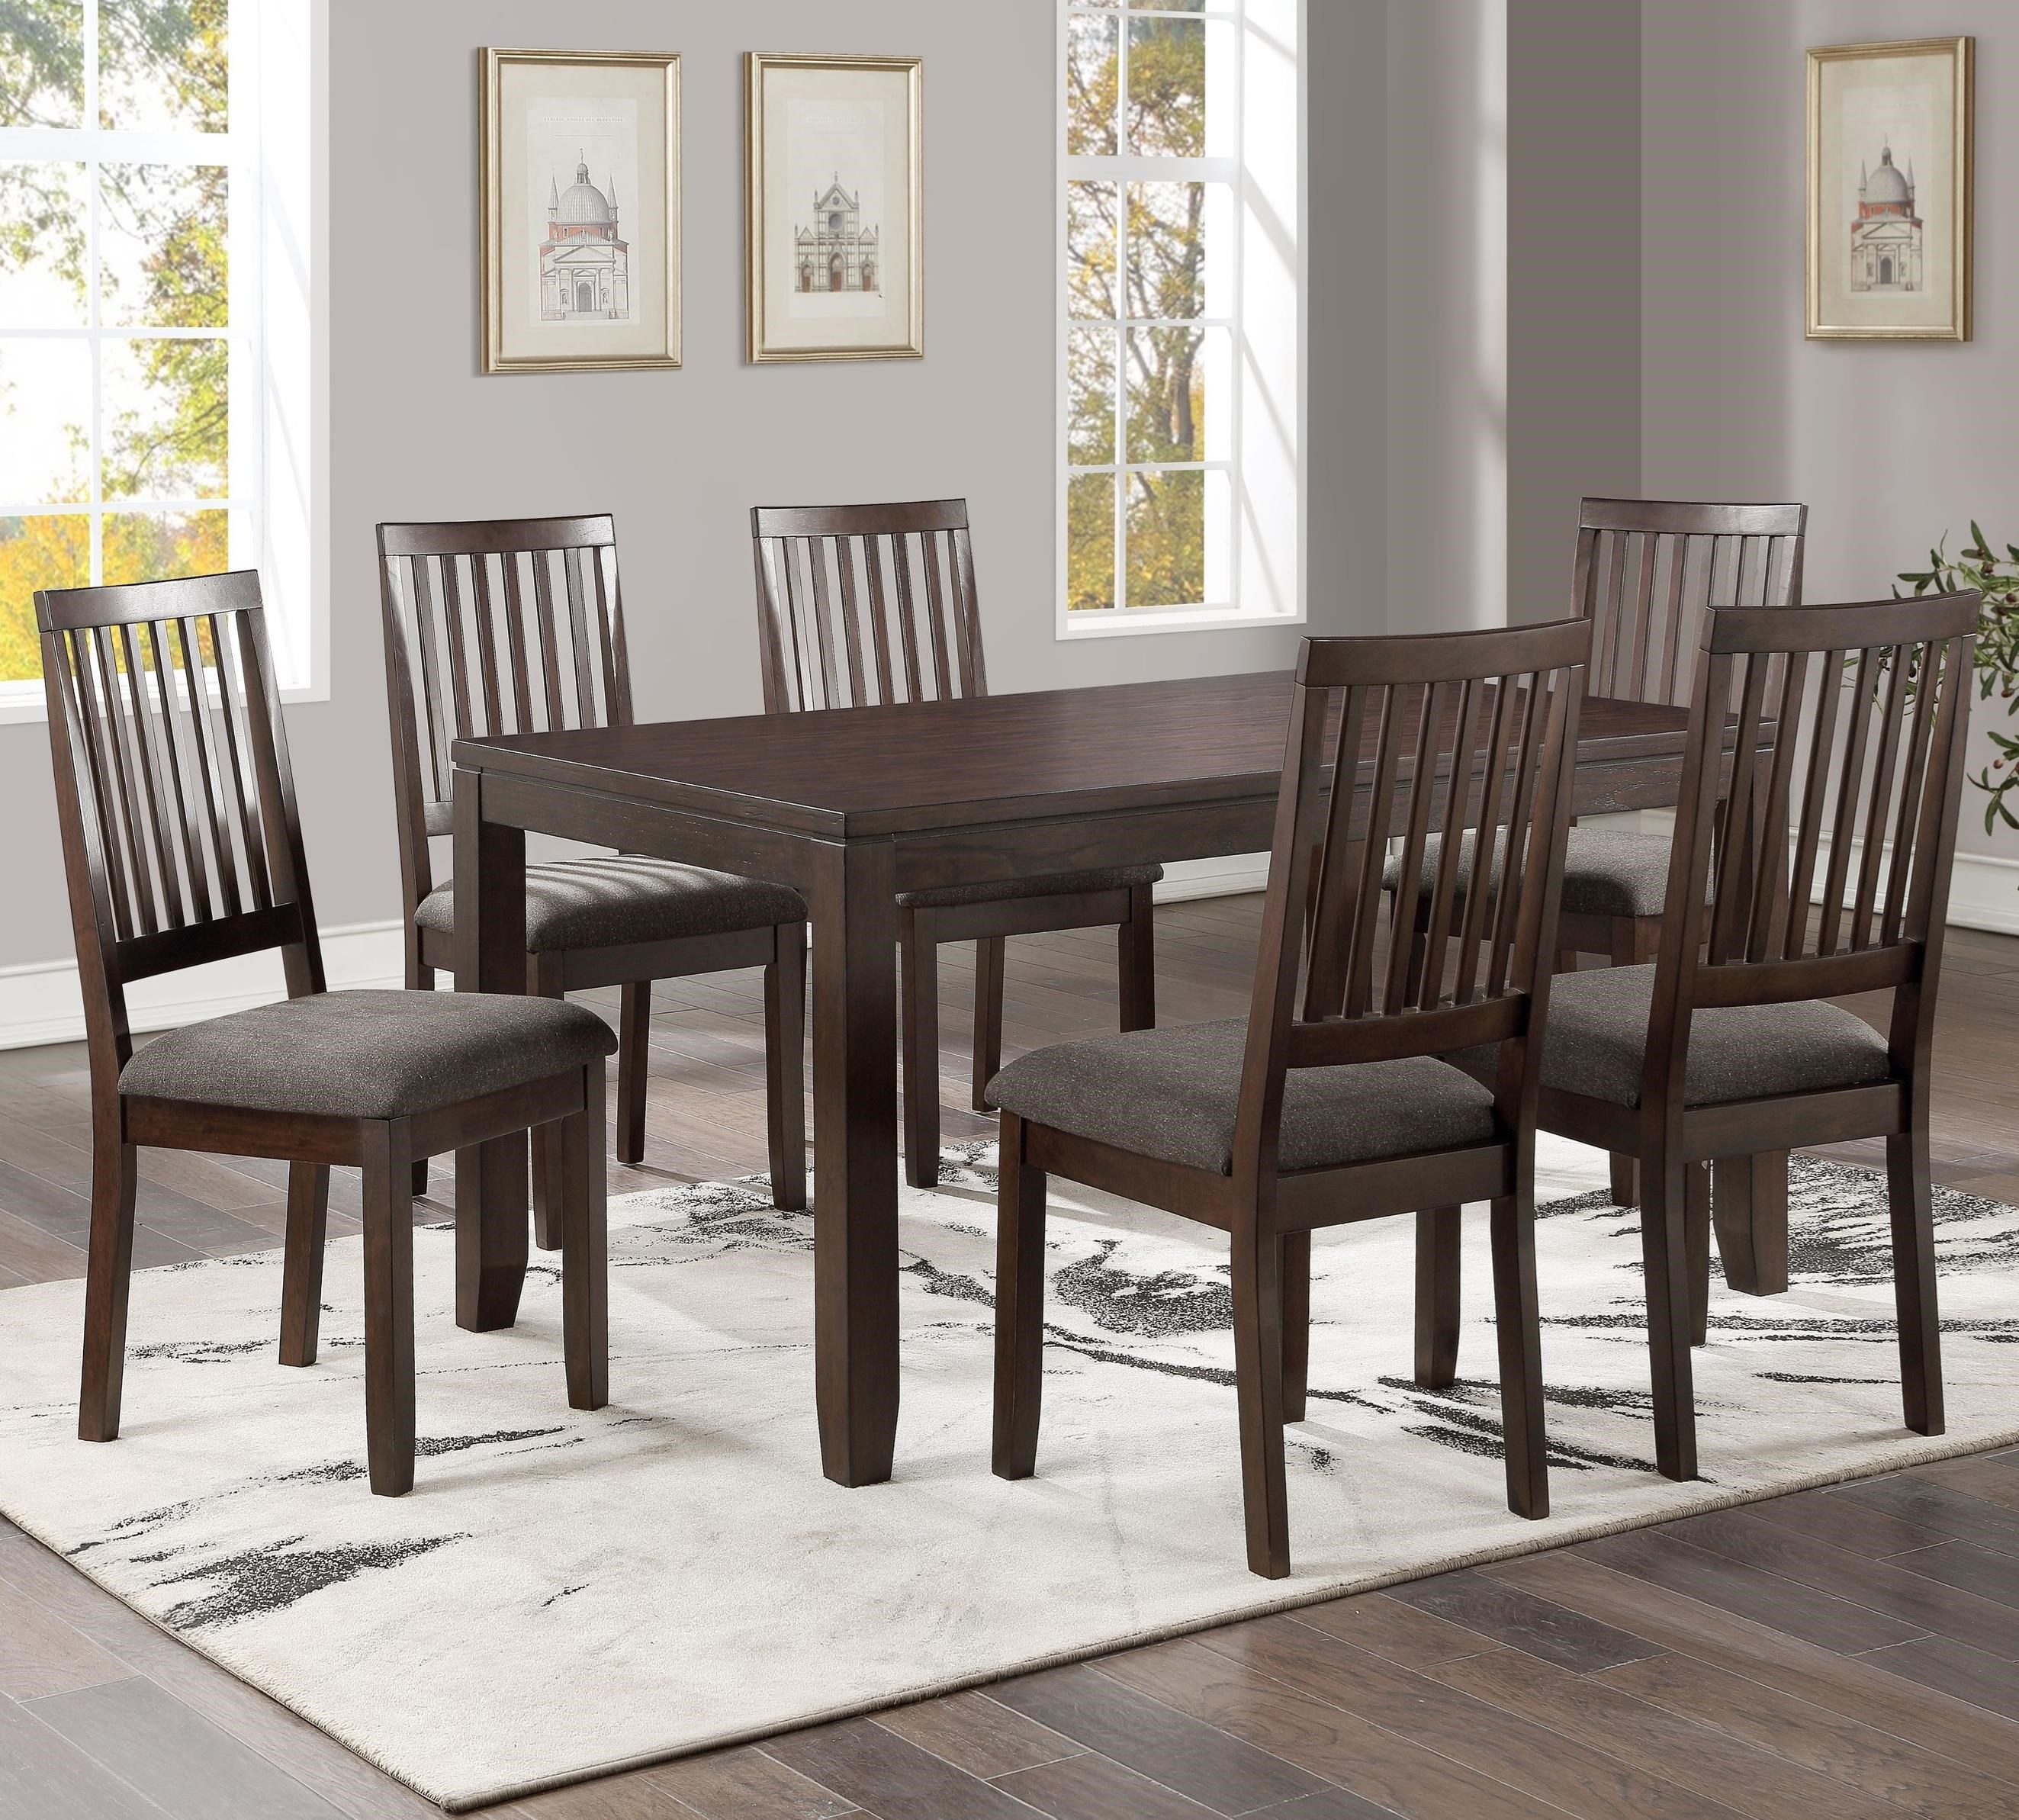 Yorktown 7-Pack Dining Set by Steve Silver at Darvin Furniture